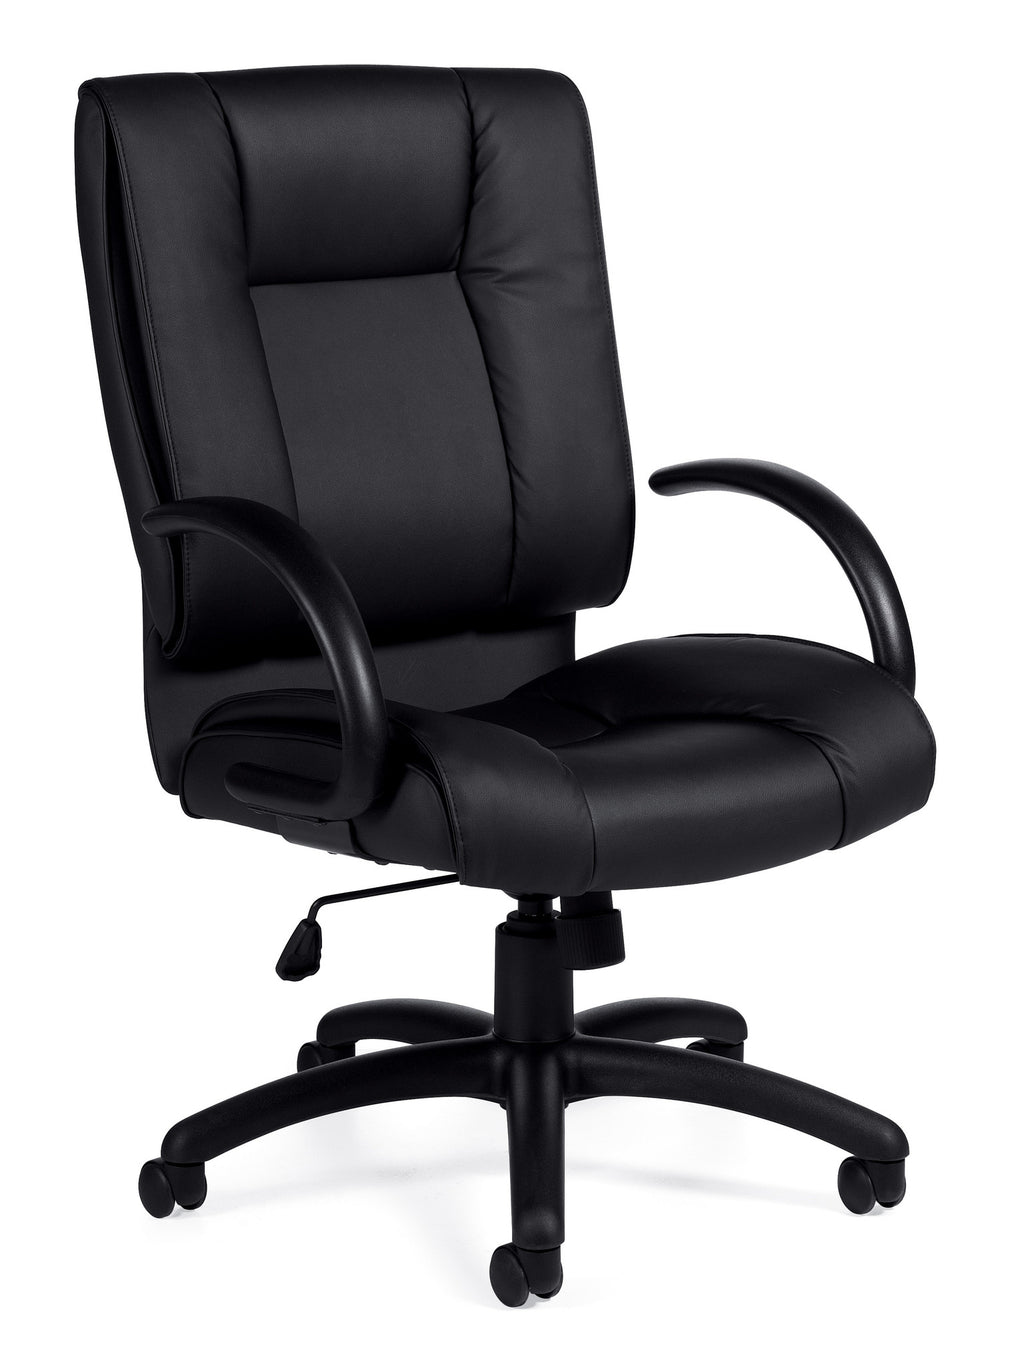 OTG 2700 Conference Chair